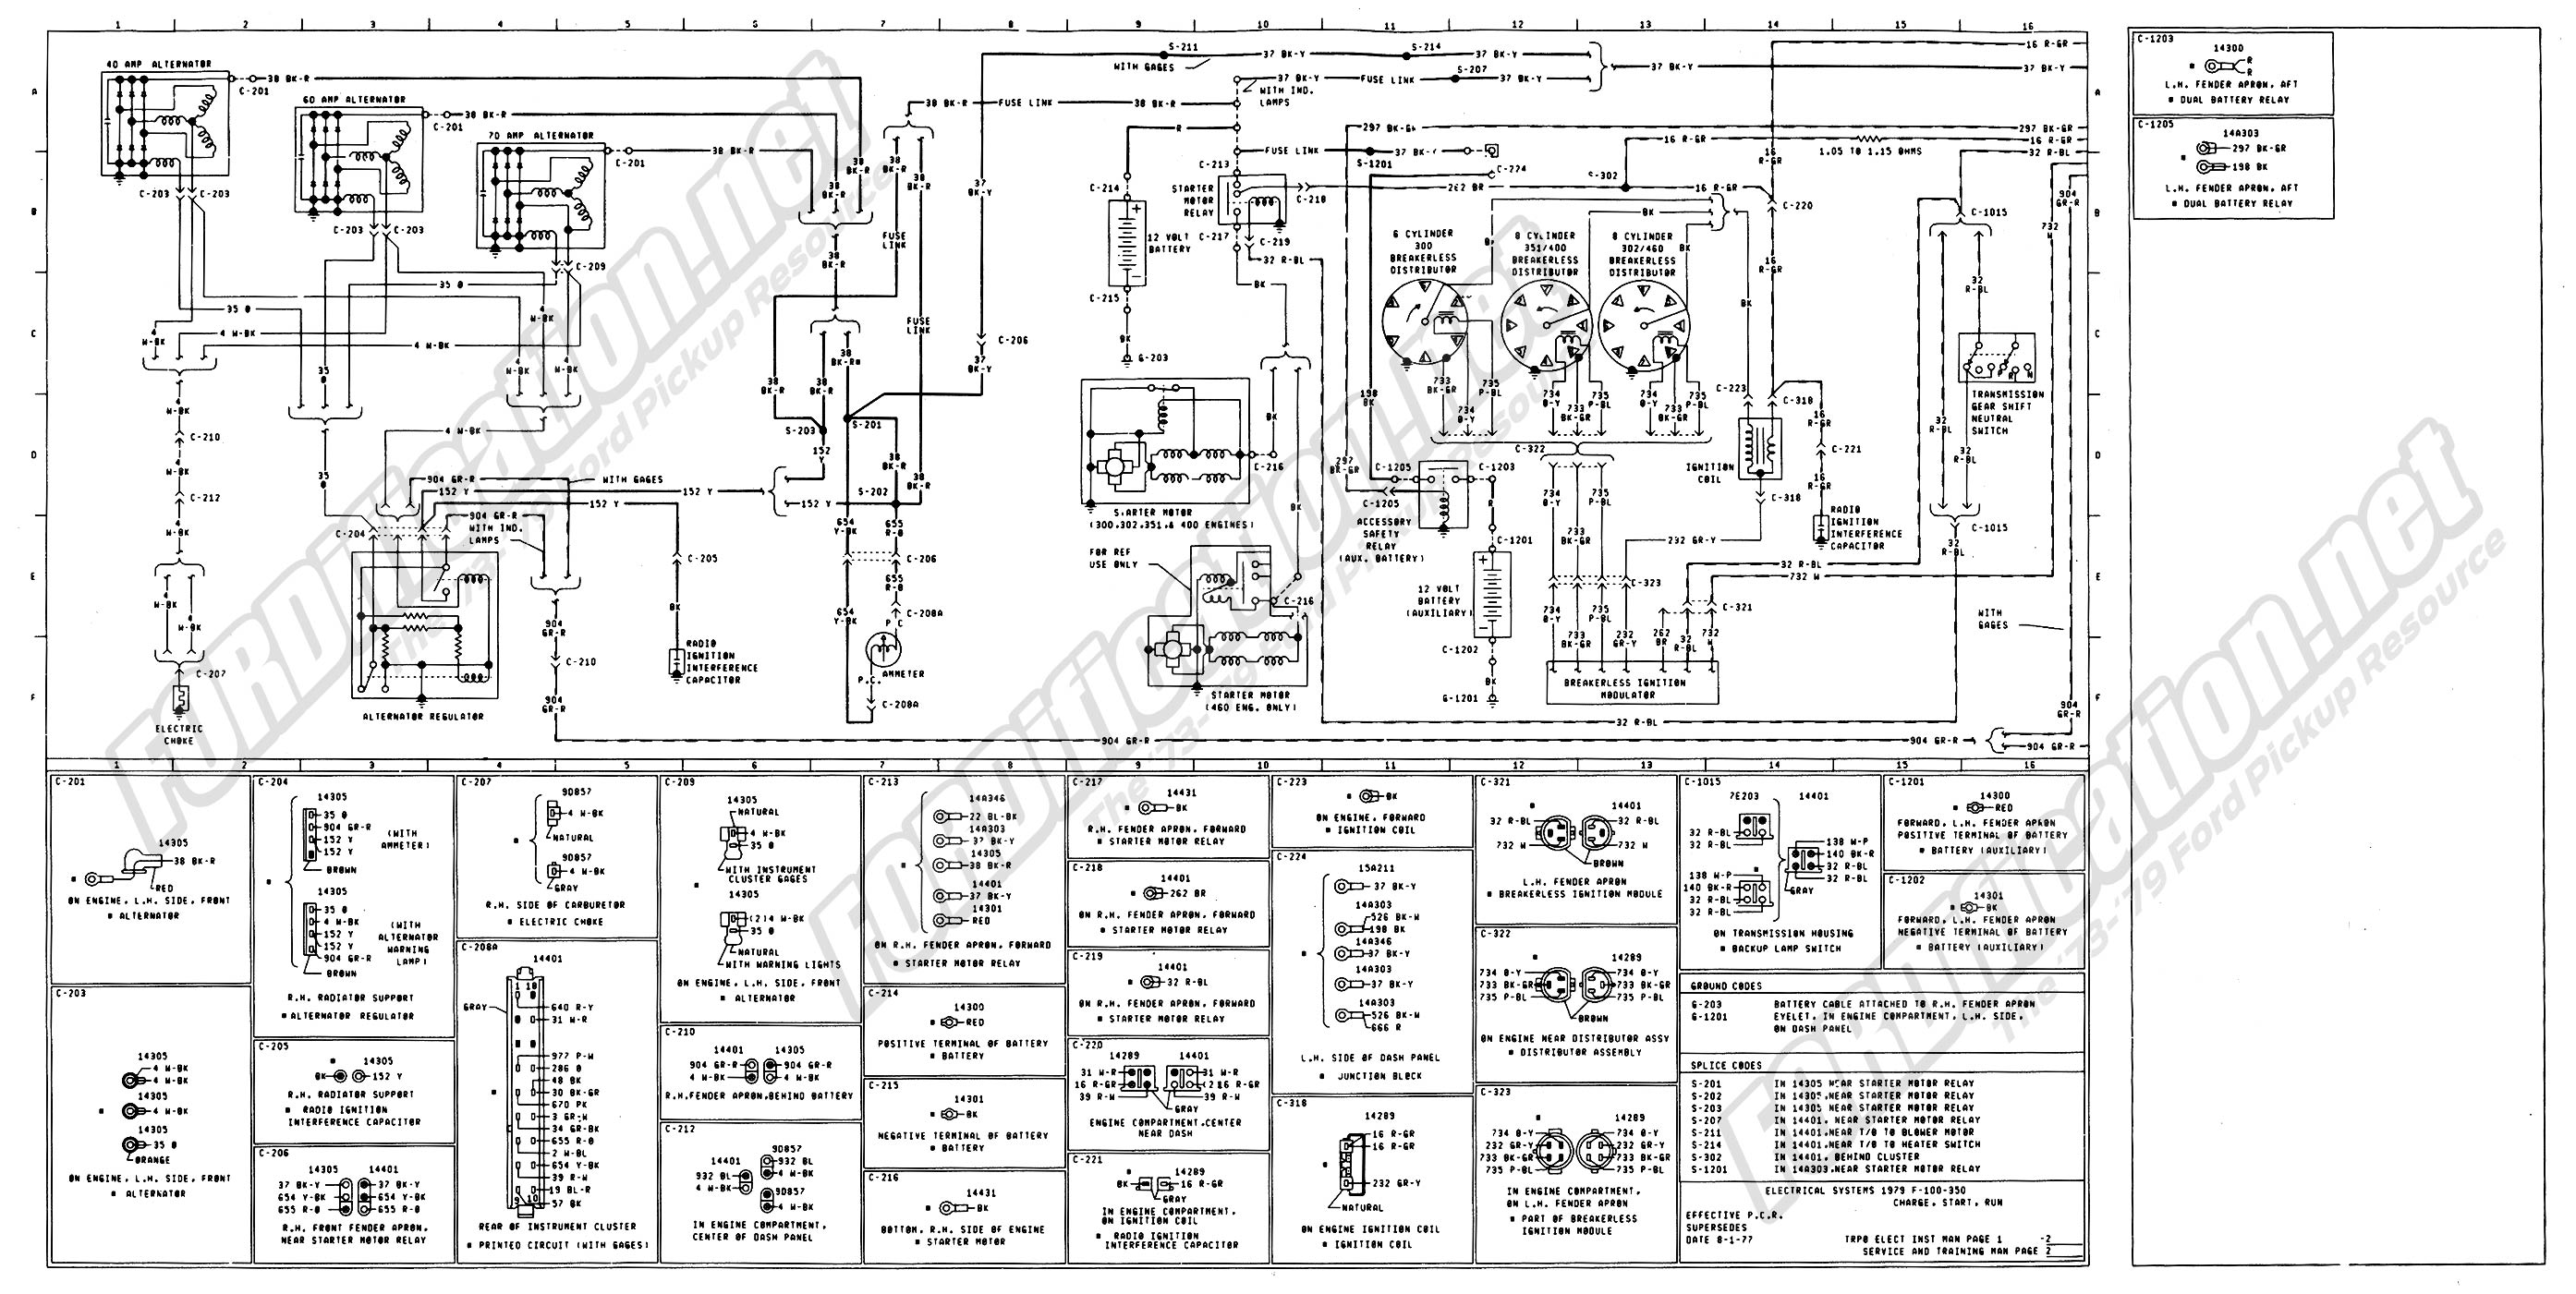 wiring_79master_2of9 1973 1979 ford truck wiring diagrams & schematics fordification net 1999 F150 Radio Wiring Diagram at bayanpartner.co